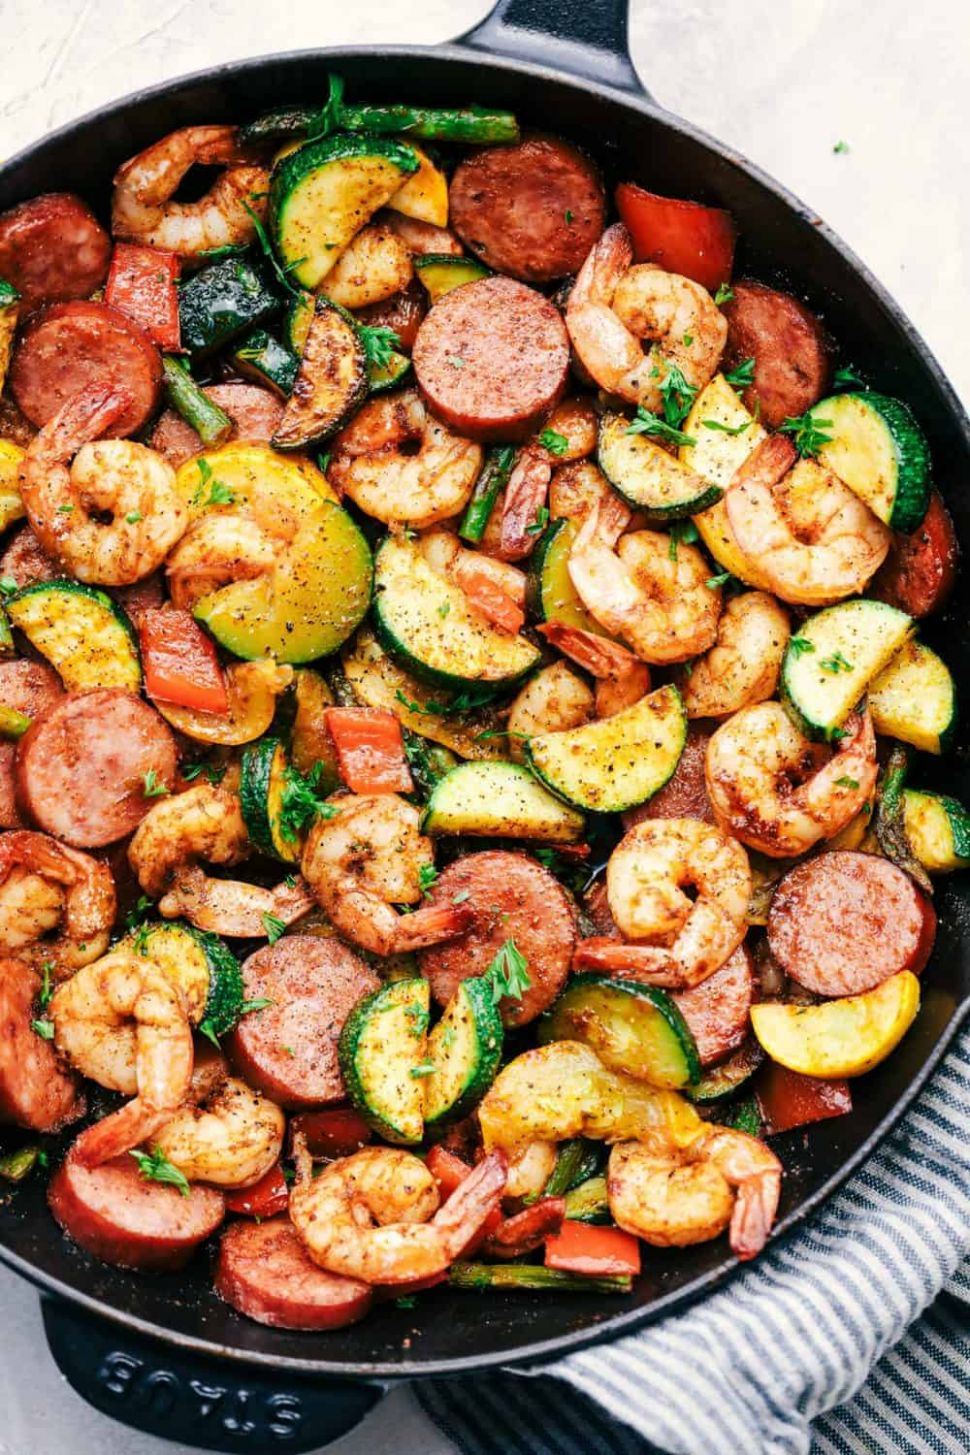 Cajun Shrimp and Sausage Vegetable Skillet - Recipes With Summer Sausage